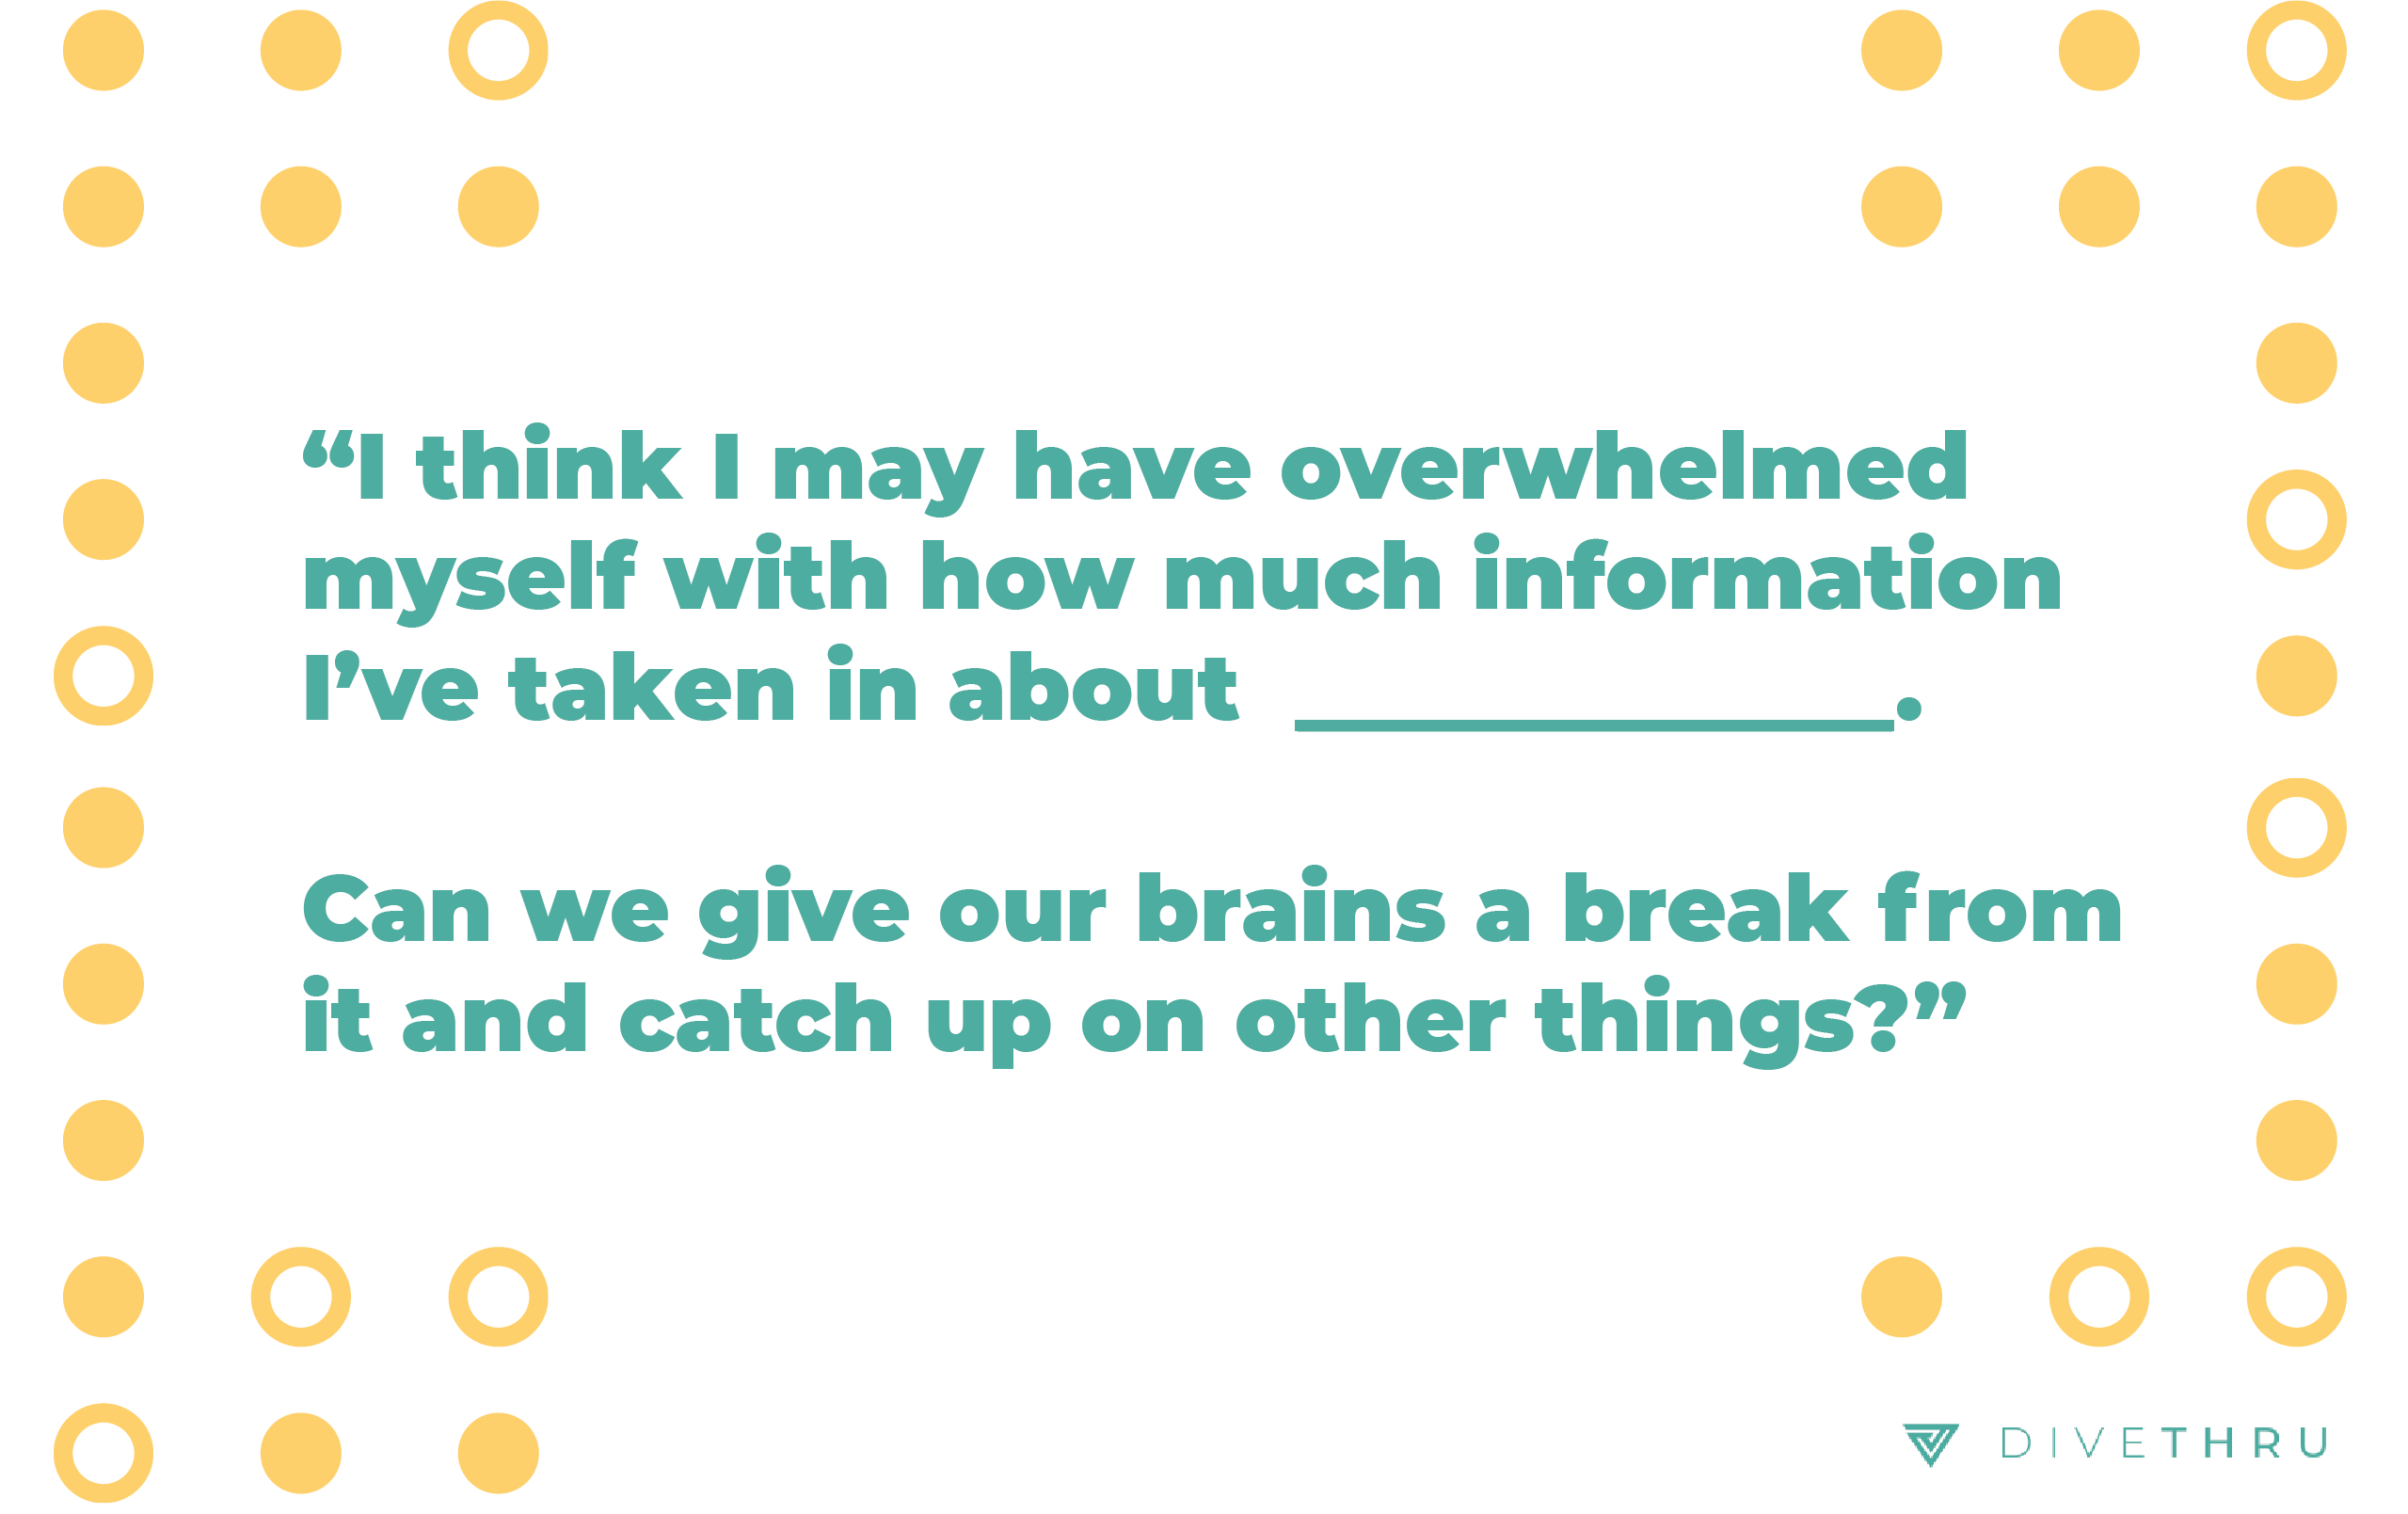 "The image has a quote that says ""I think I may have overwhelmed myself with how much information I've taken in about this topic. Can we give our brains a break from it and catch up on other things?"""